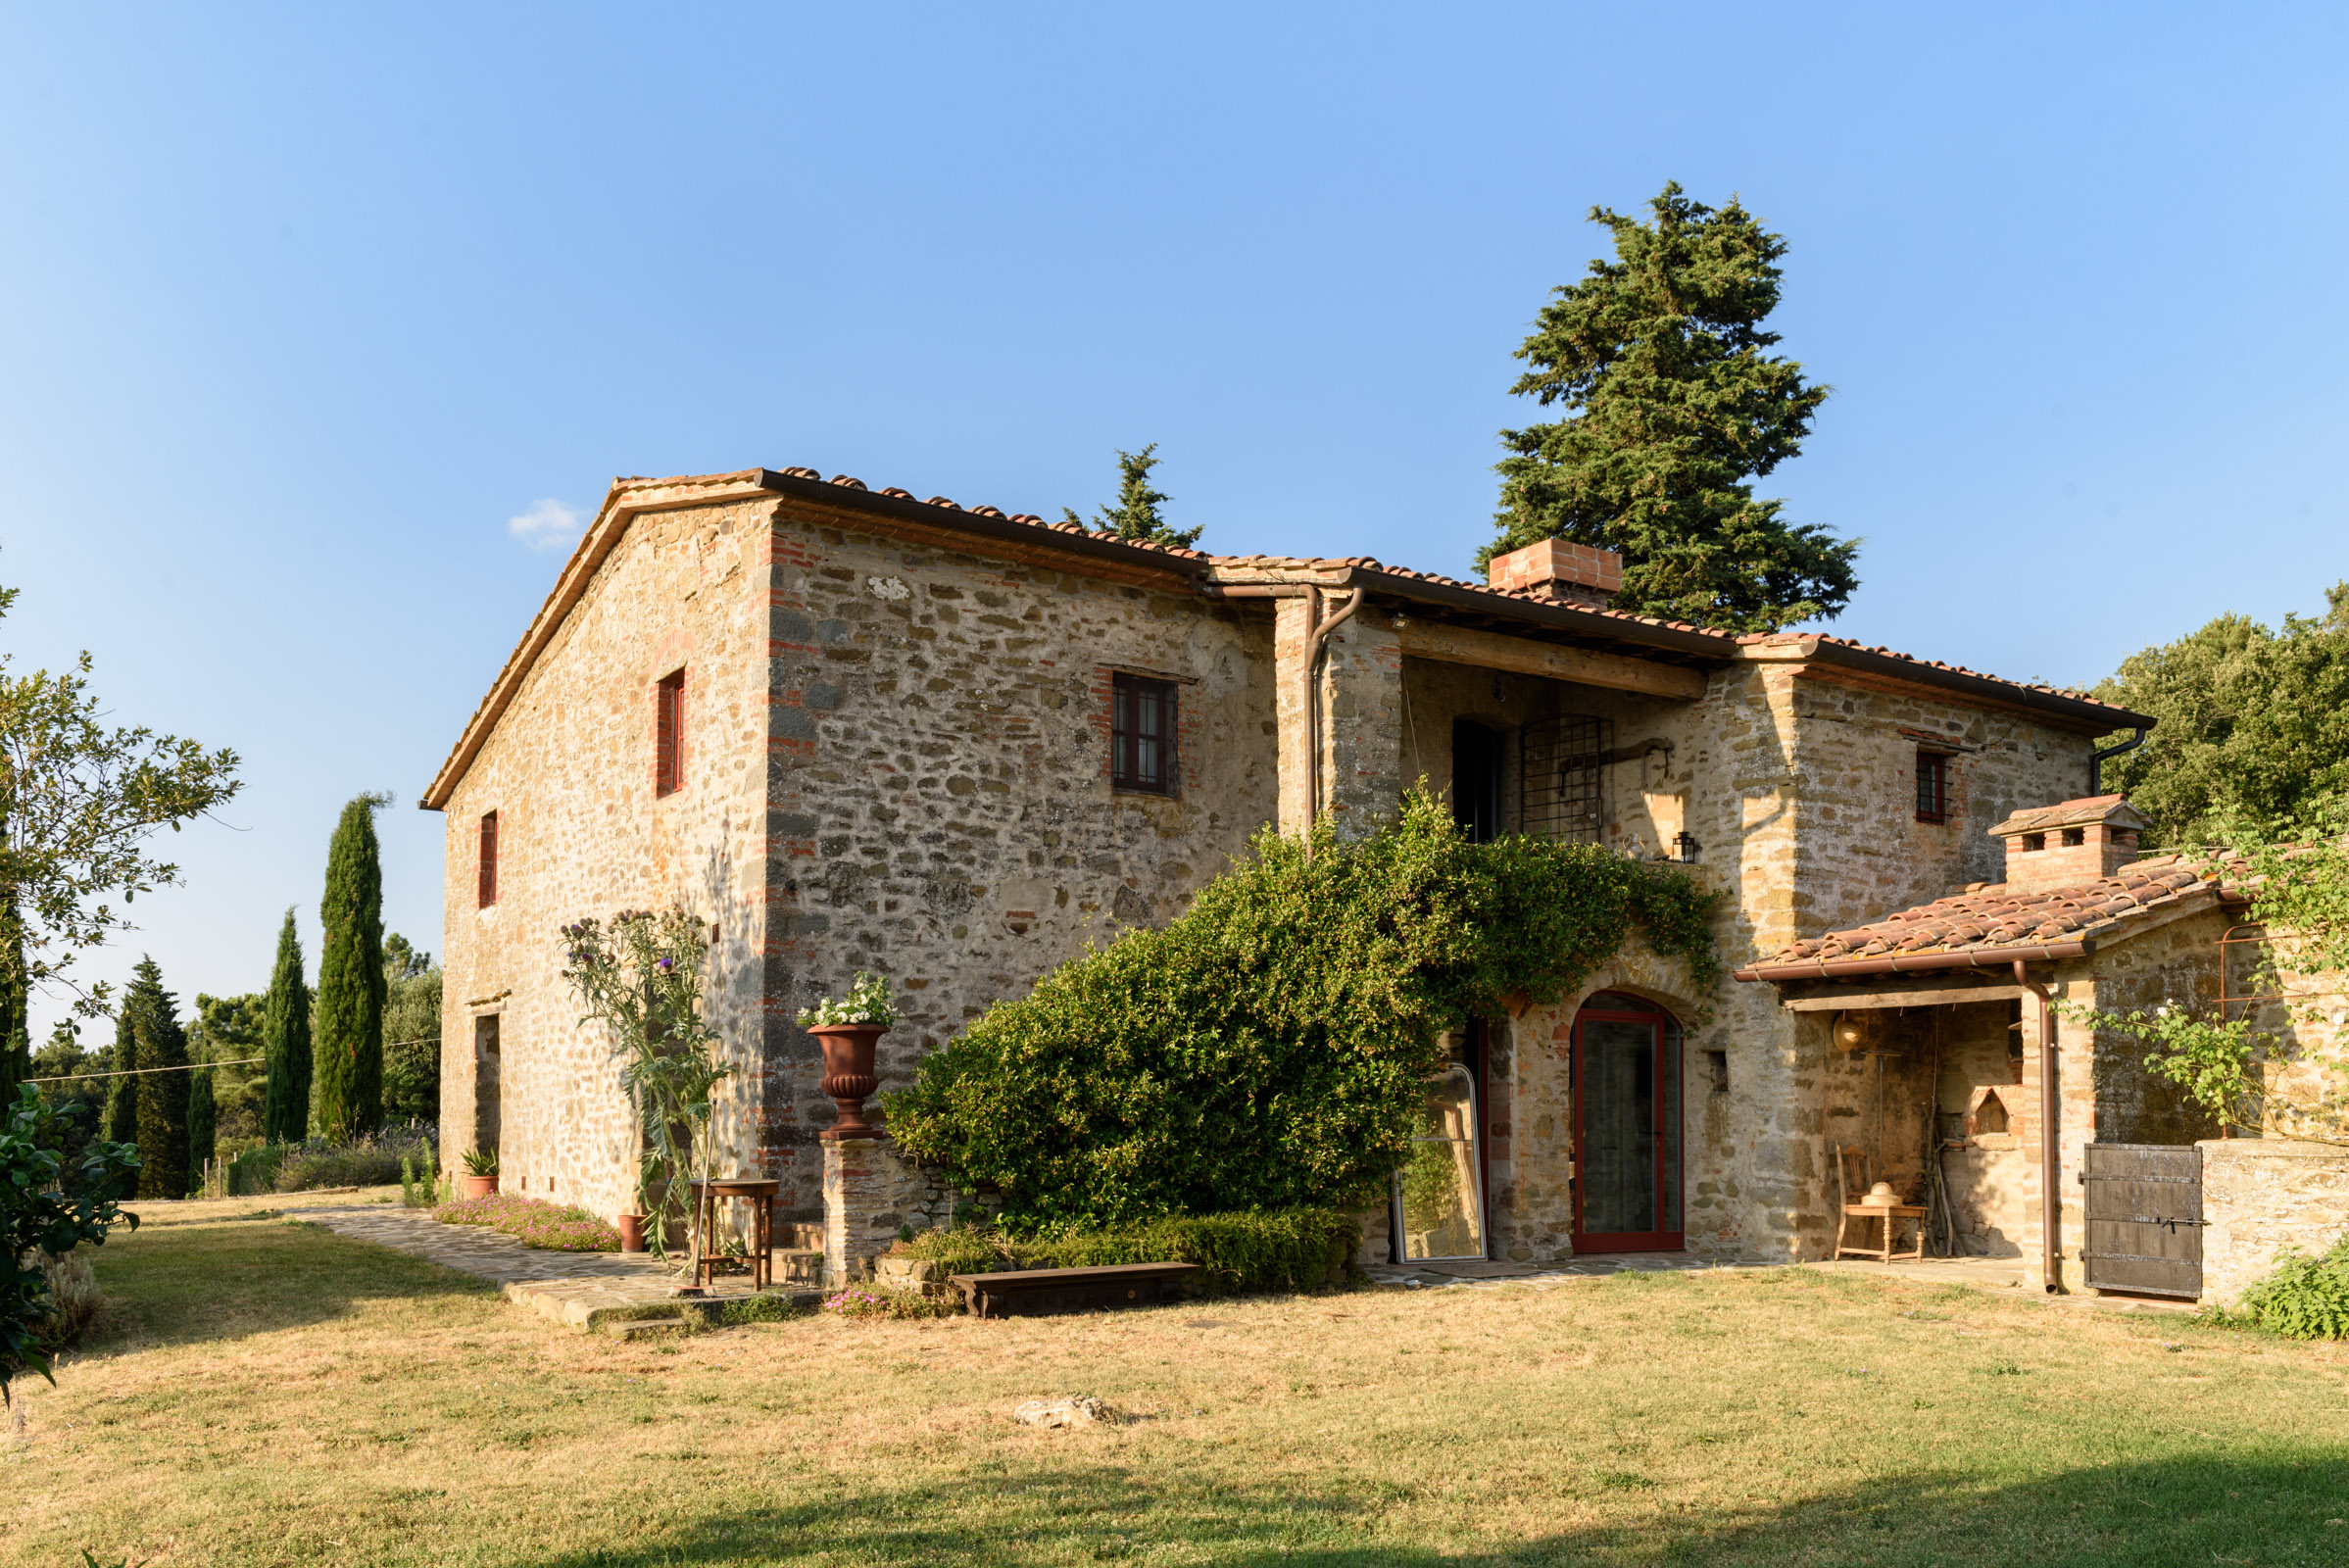 Single Family Home for Sale at Siena view - Country retreat Chianti hills Monte San Savino, Italy